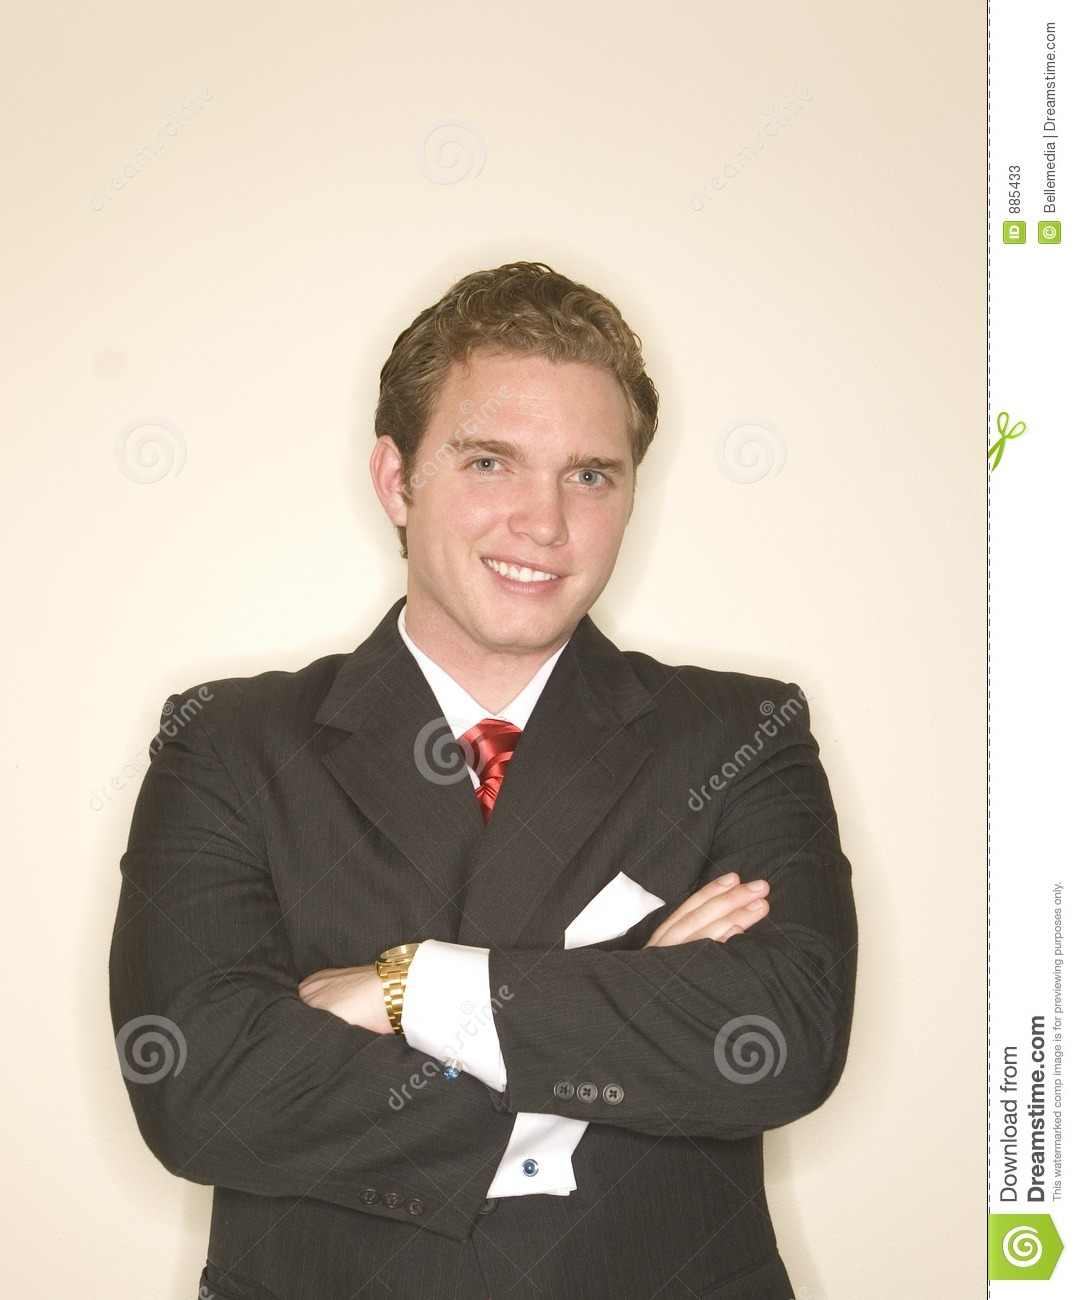 Business man in power pose 10